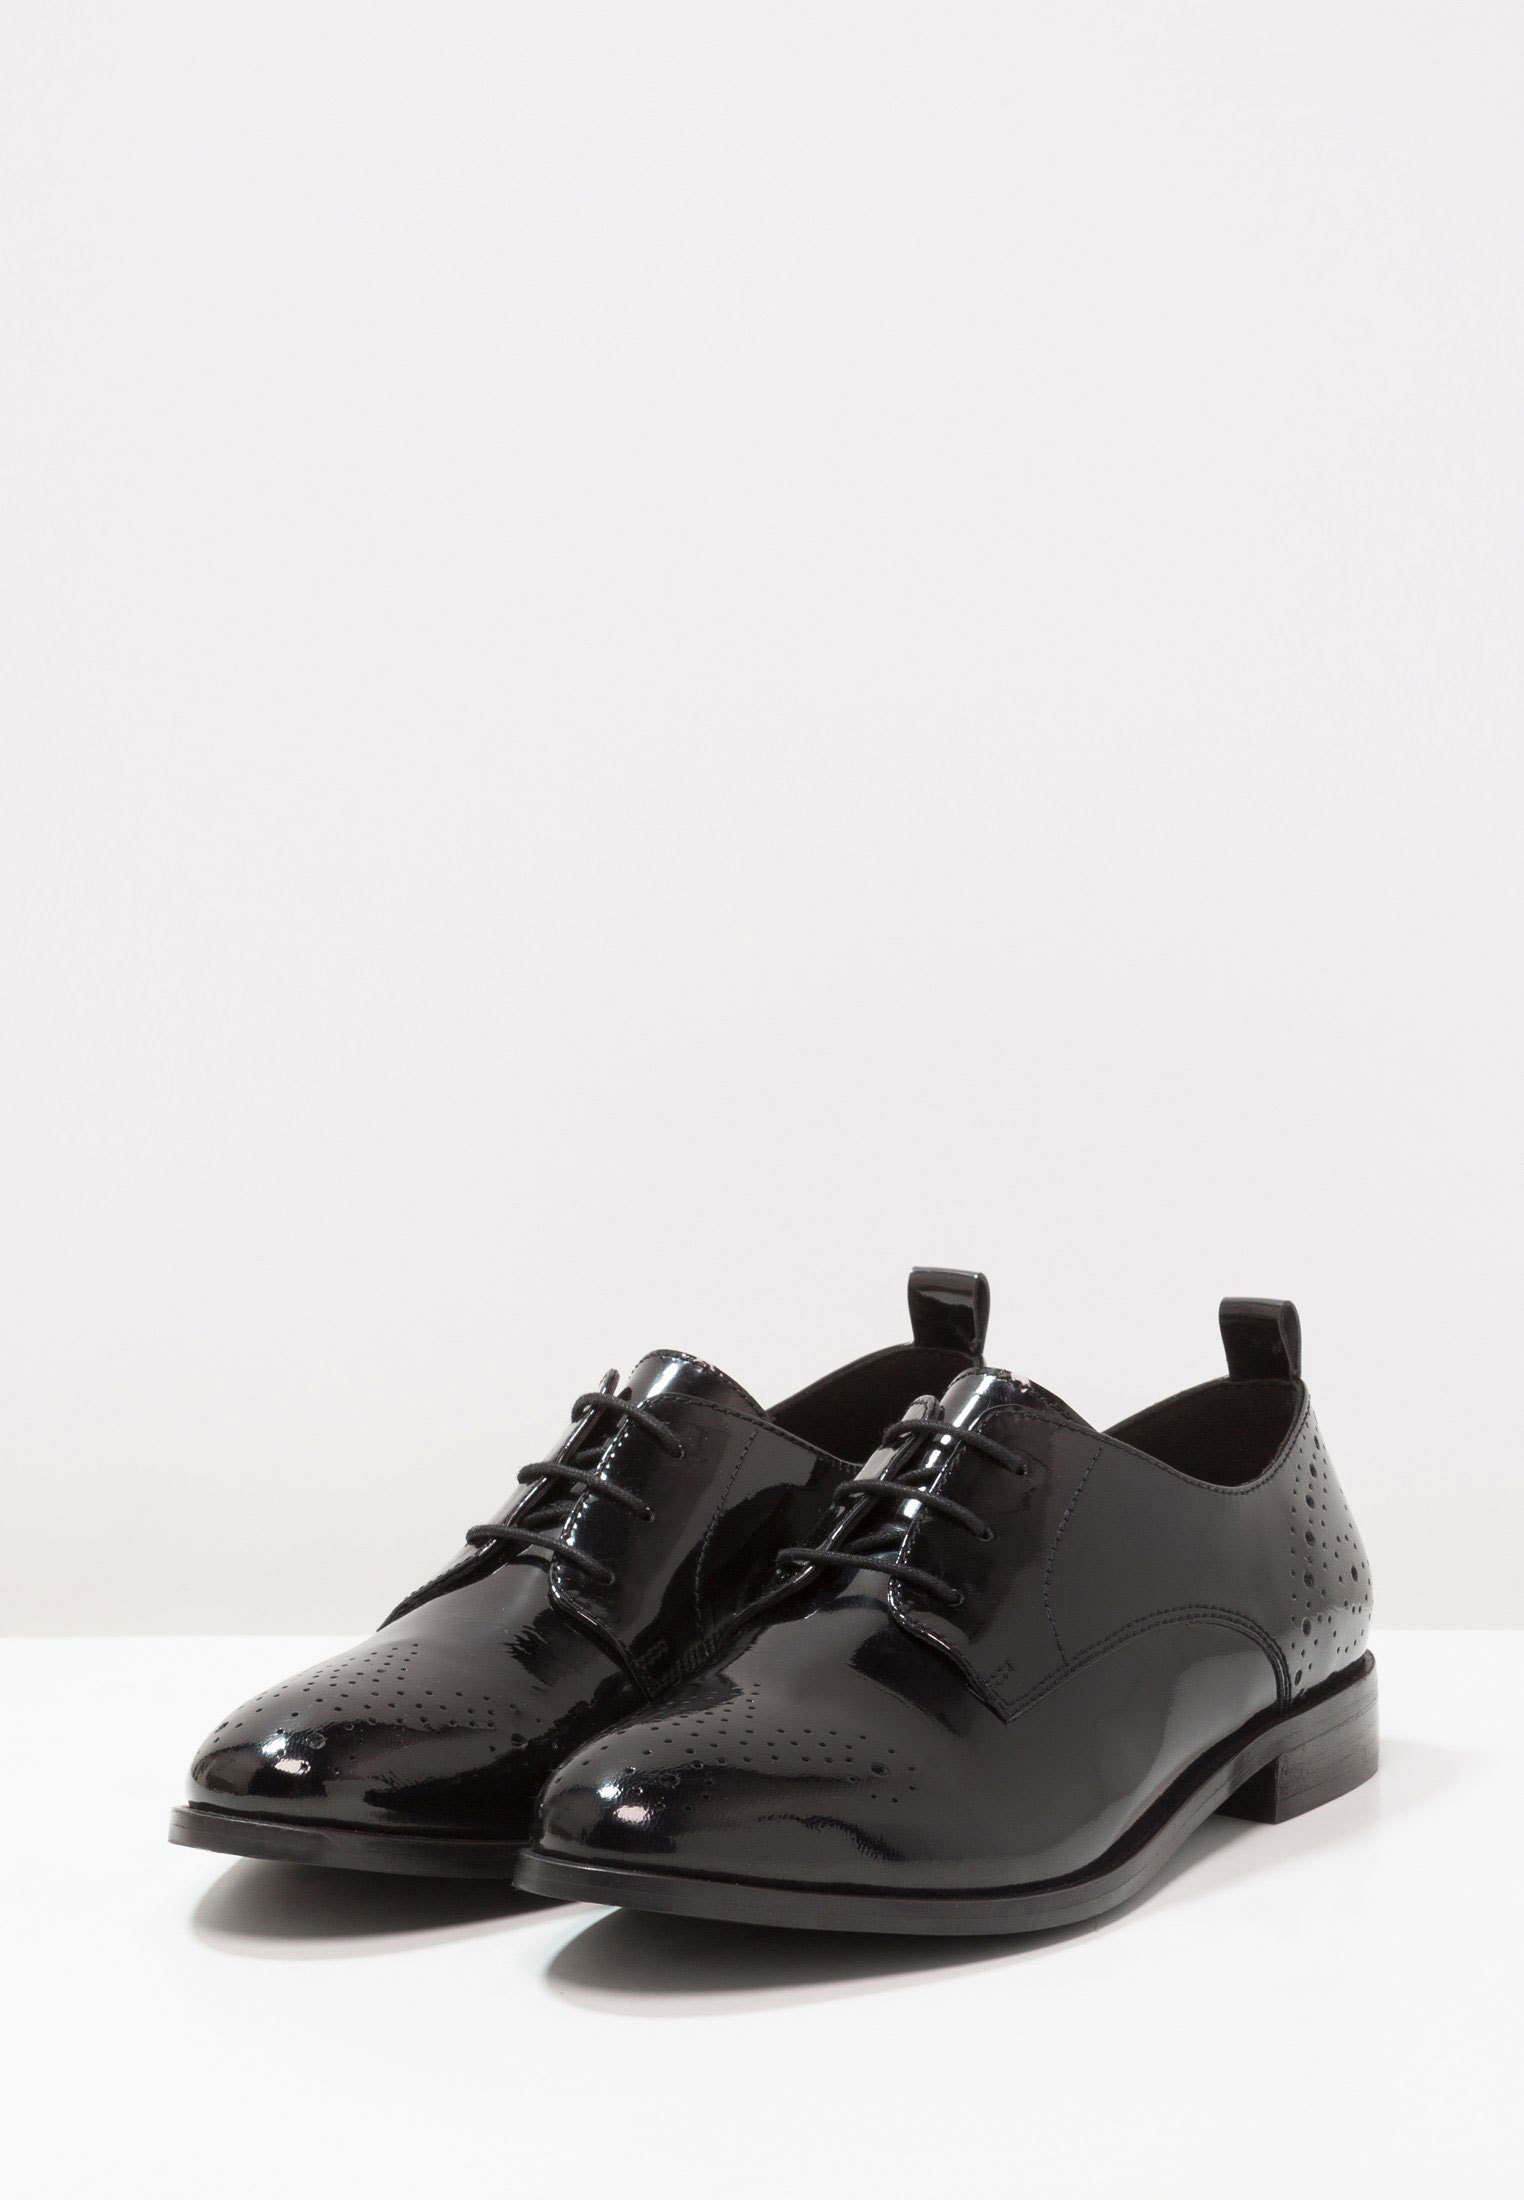 Zapatos Oxford con brillo, de Kiomi disponible en Zalando (59,45...